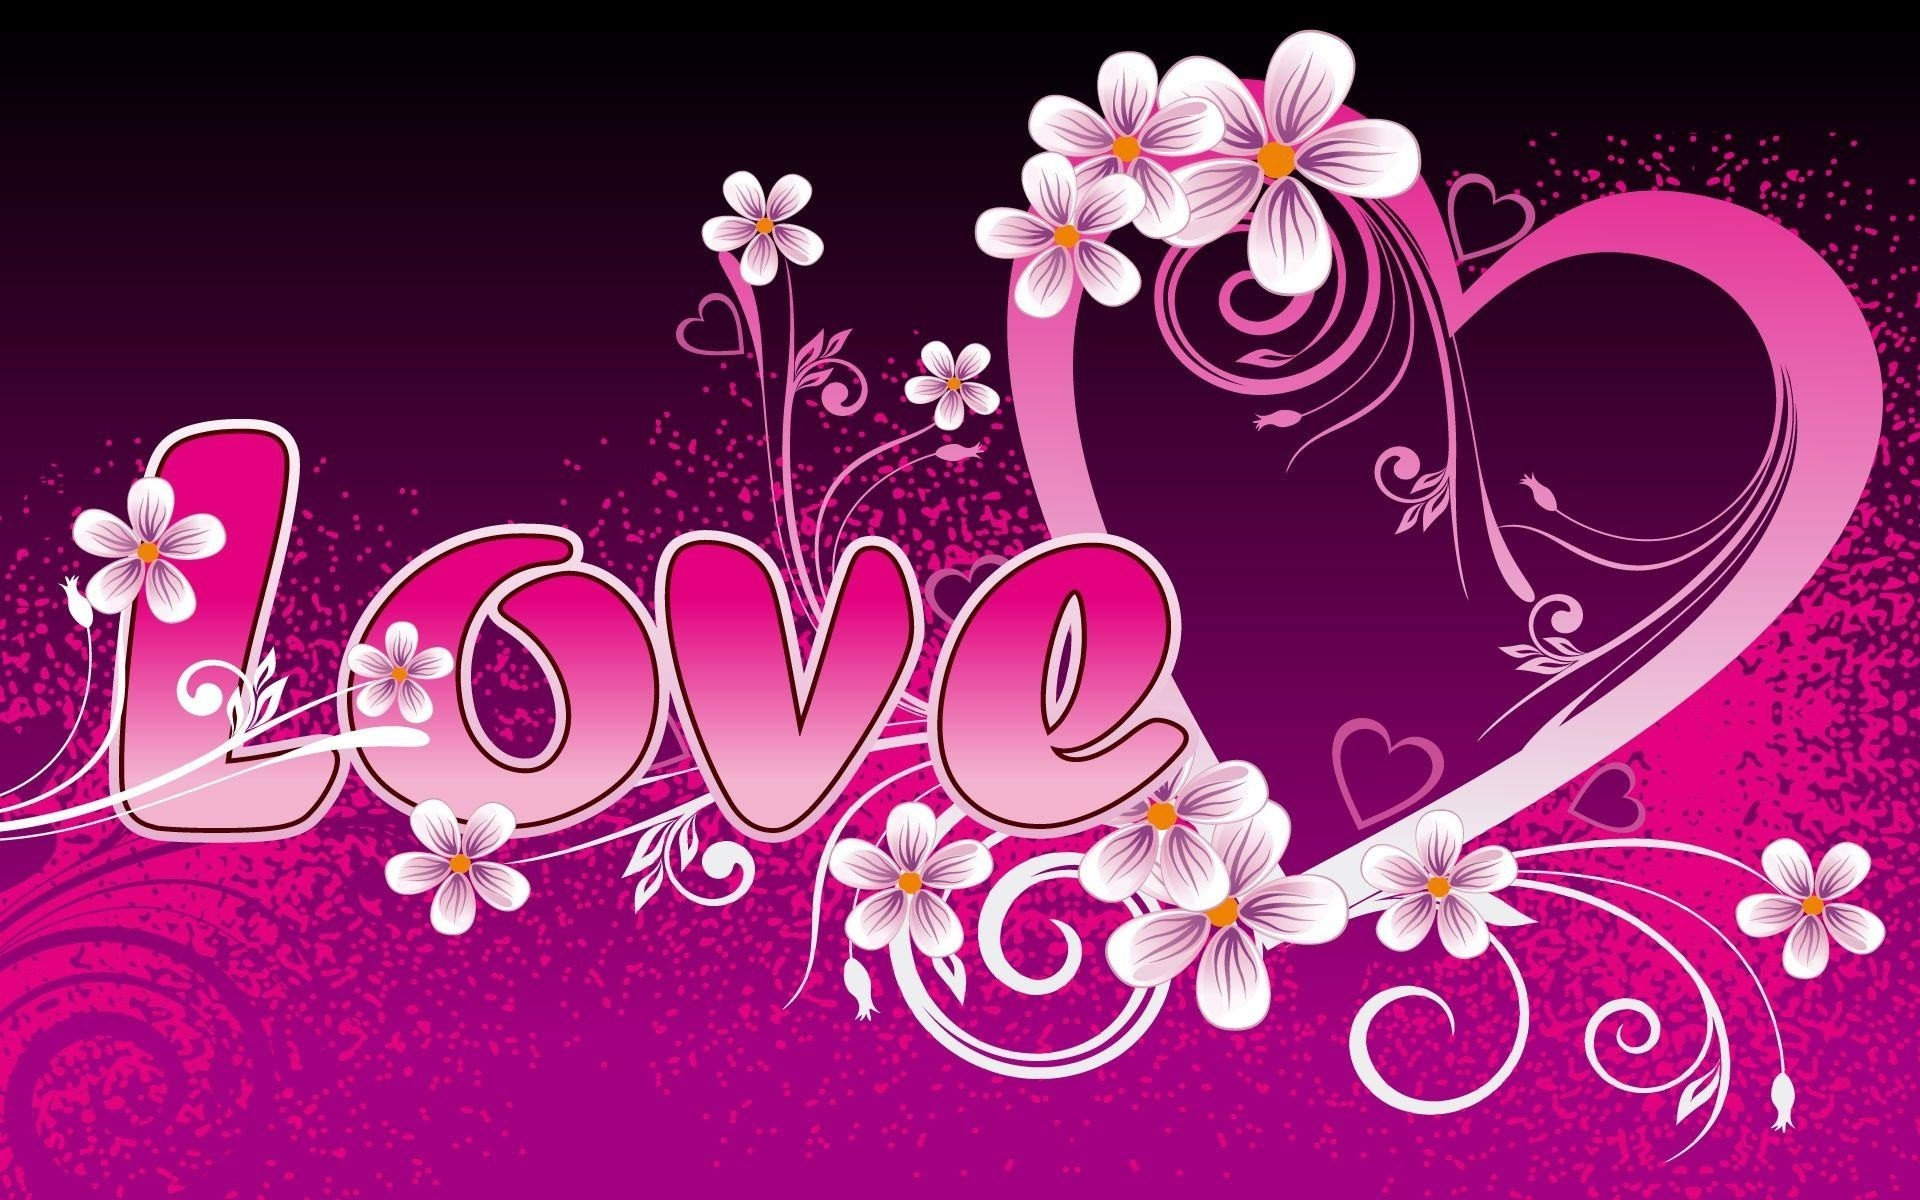 1920x1200 Wallpapers Backgrounds - Pink Love Heart Wallpaper Resolution